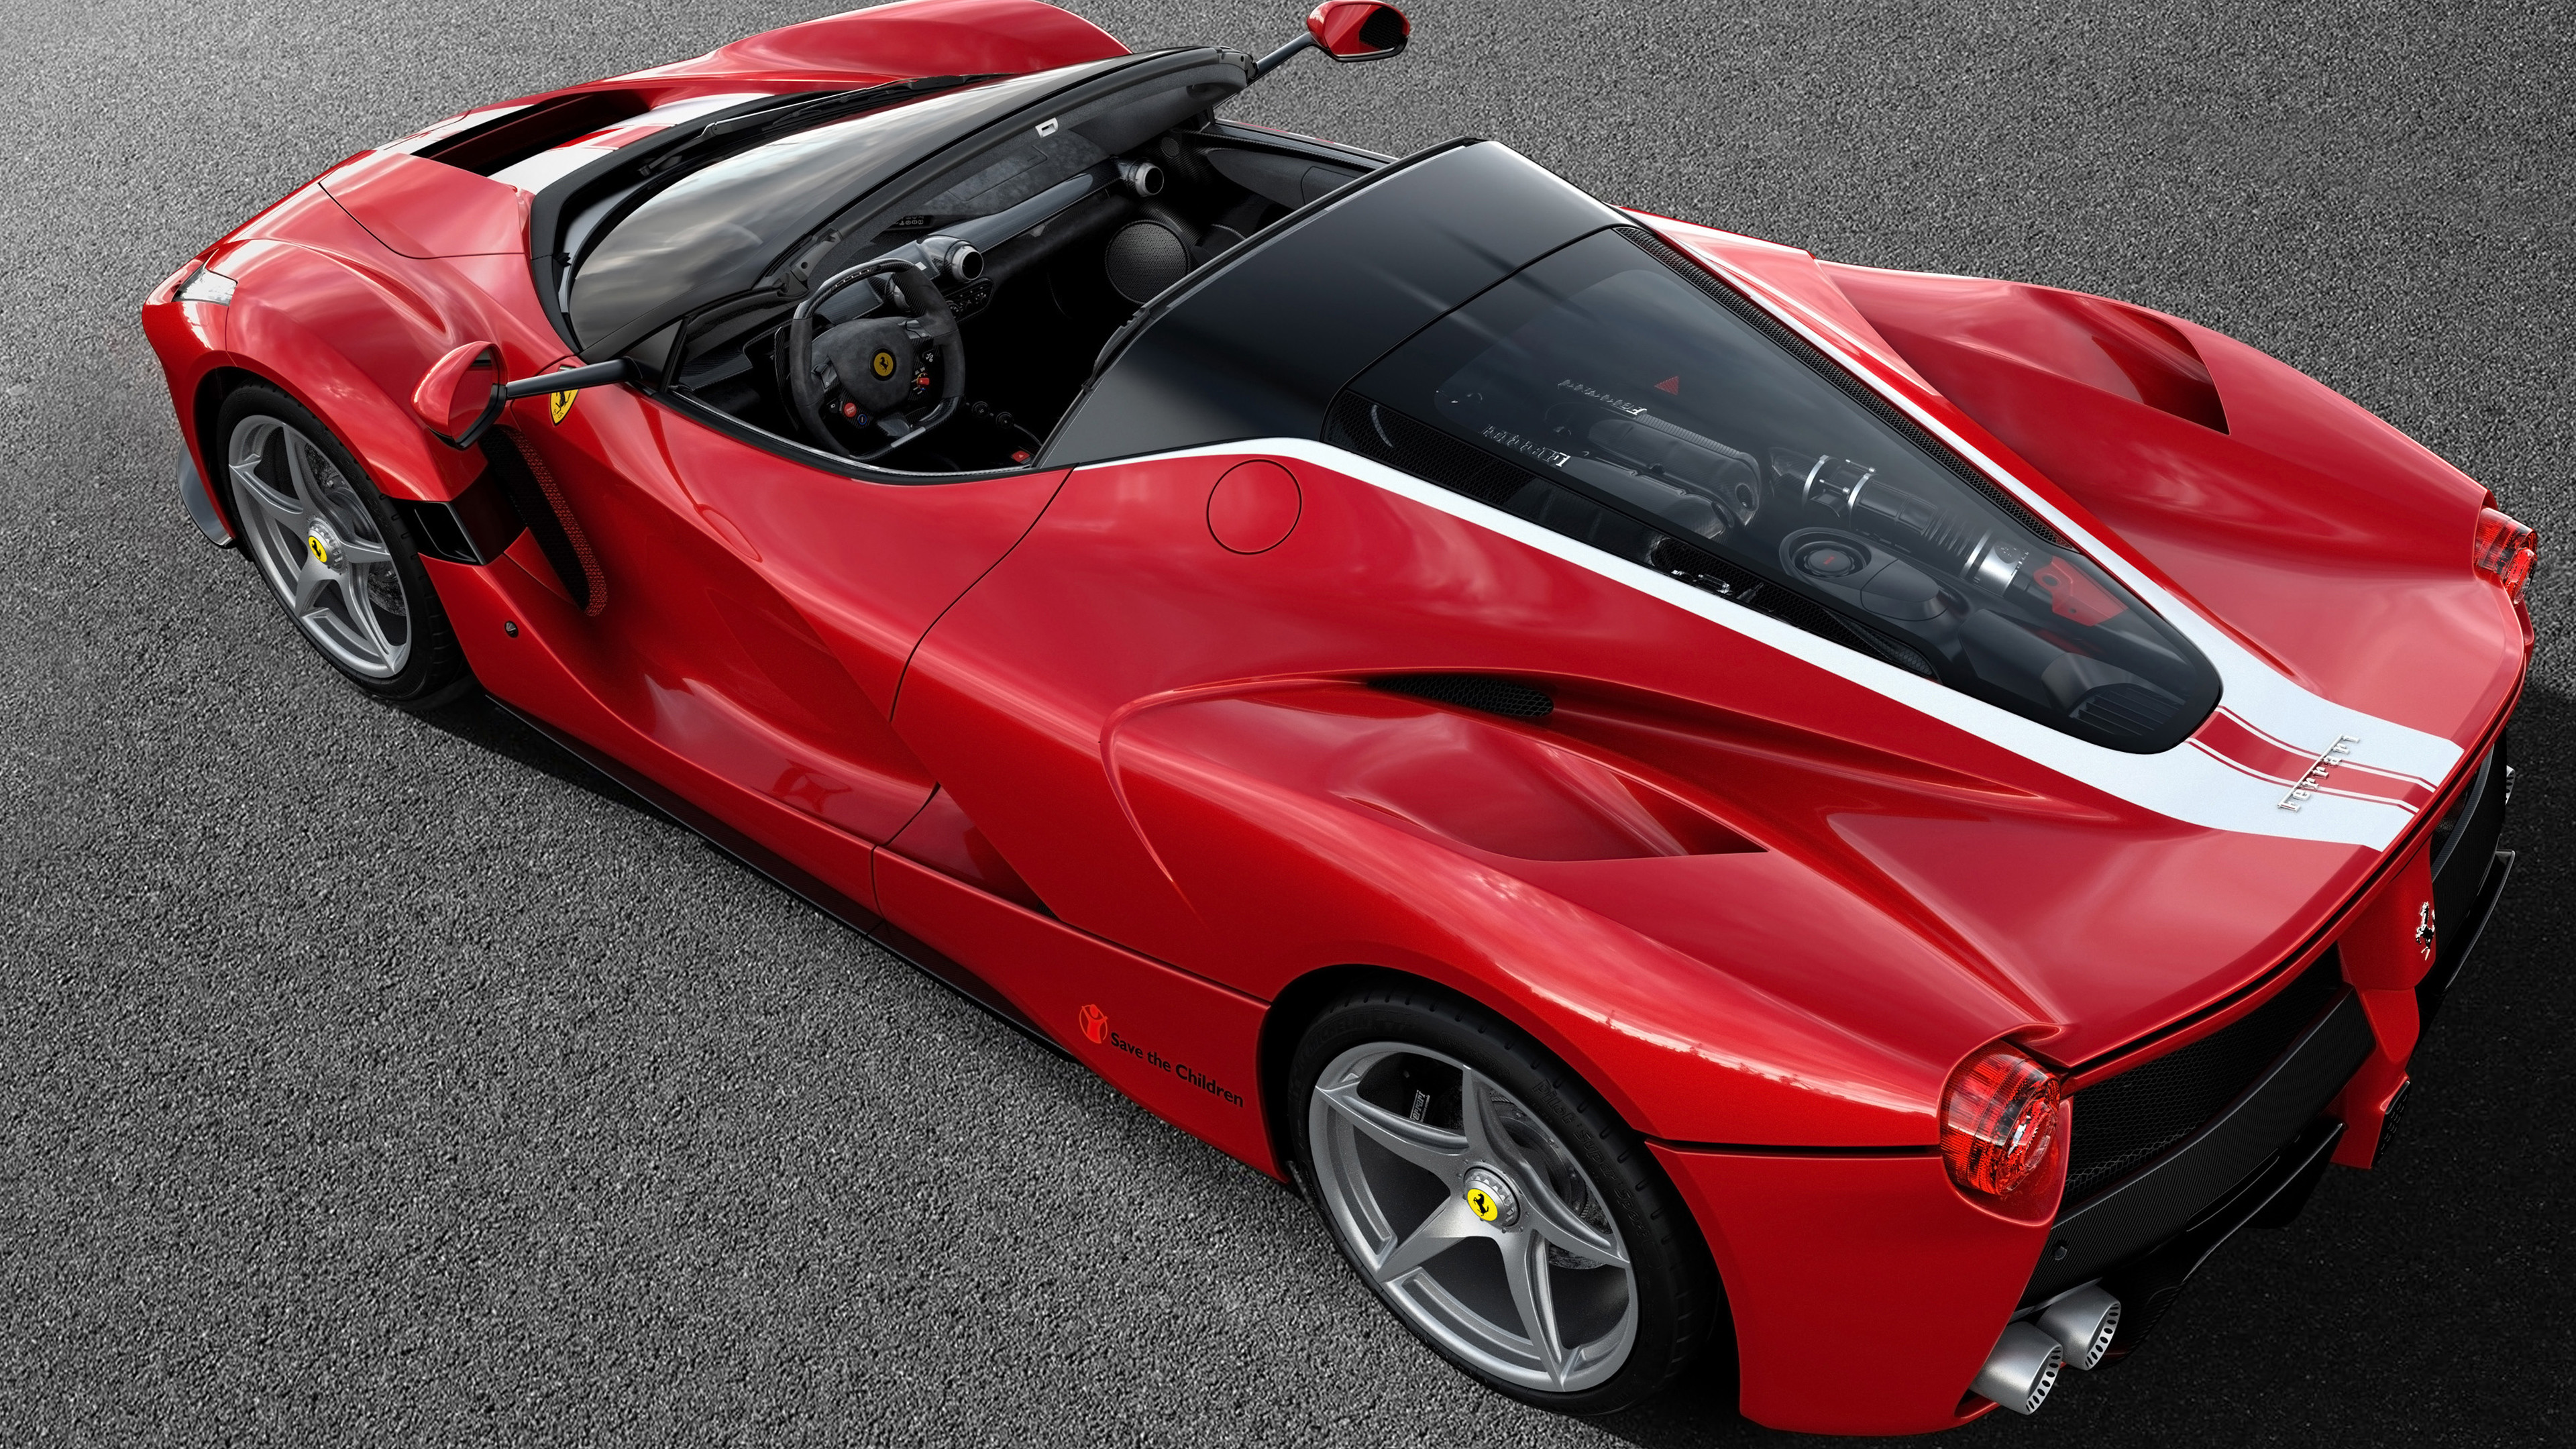 Ferrari Laferrari Wallpapers 77 Images